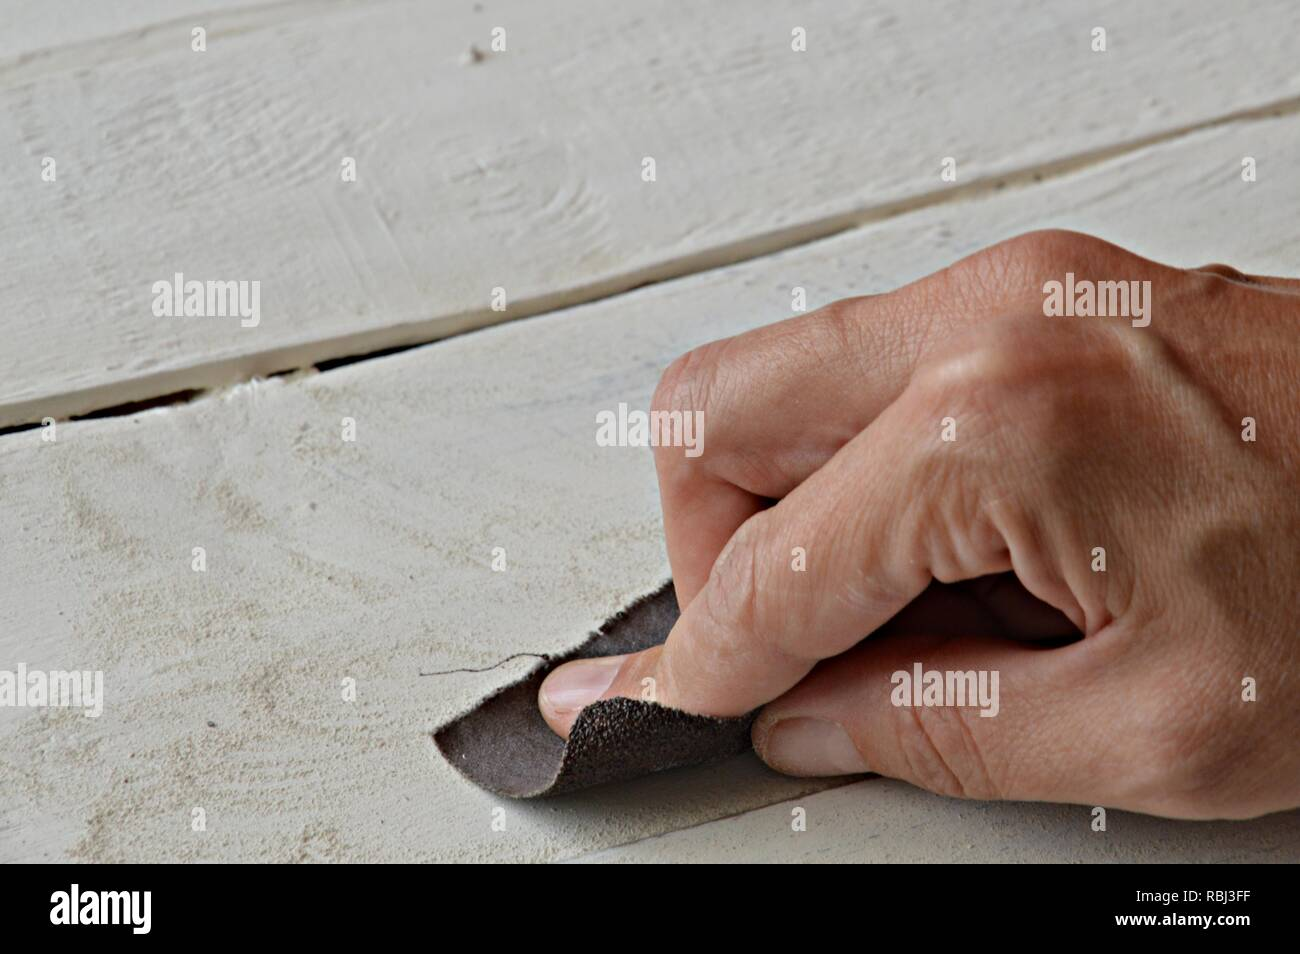 do it yourself, working on a white painted wooden board - Stock Image